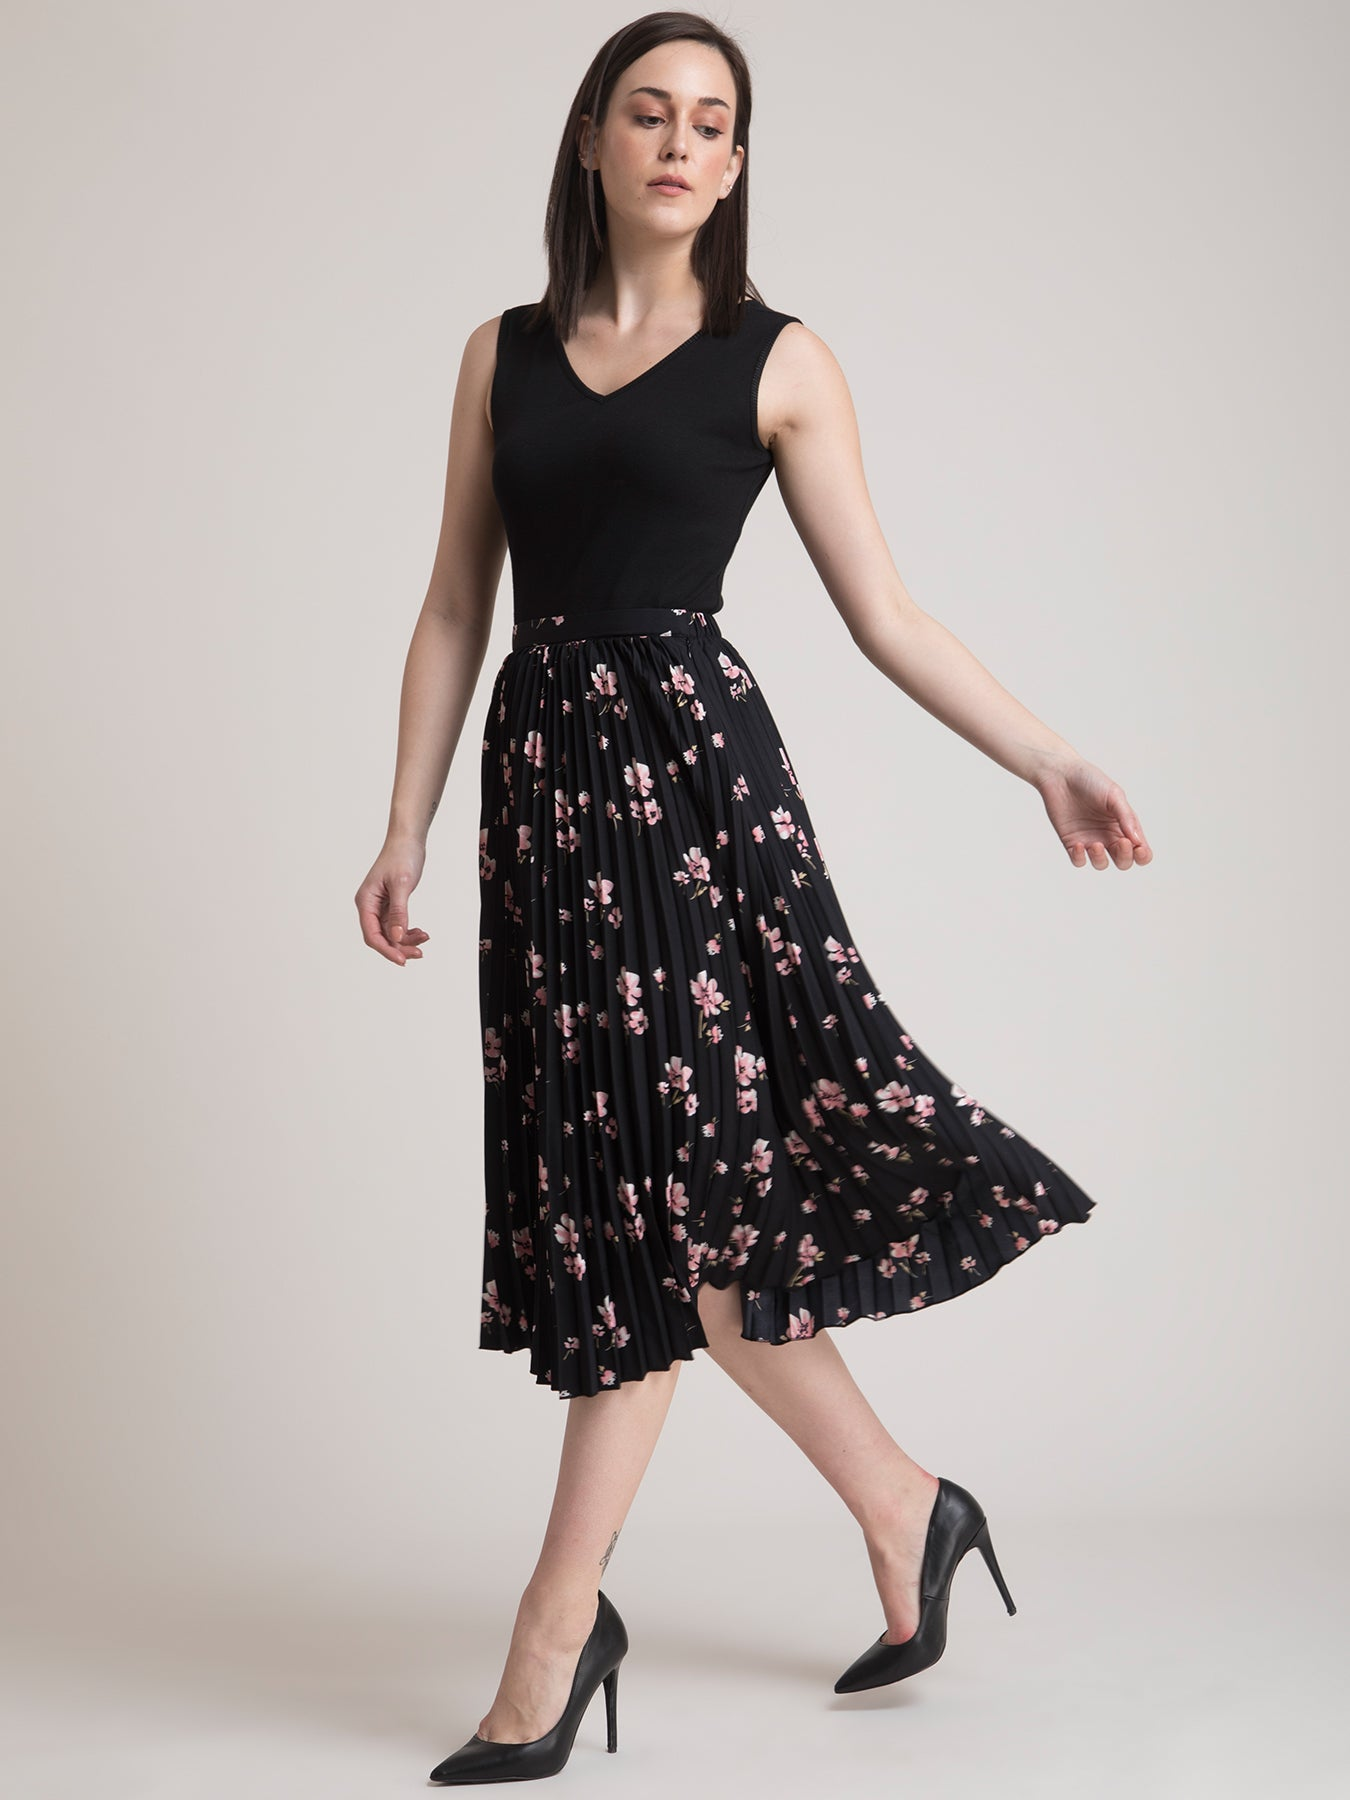 Stretchable Camisole and Pleated Floral Skirt Co-ord - Black